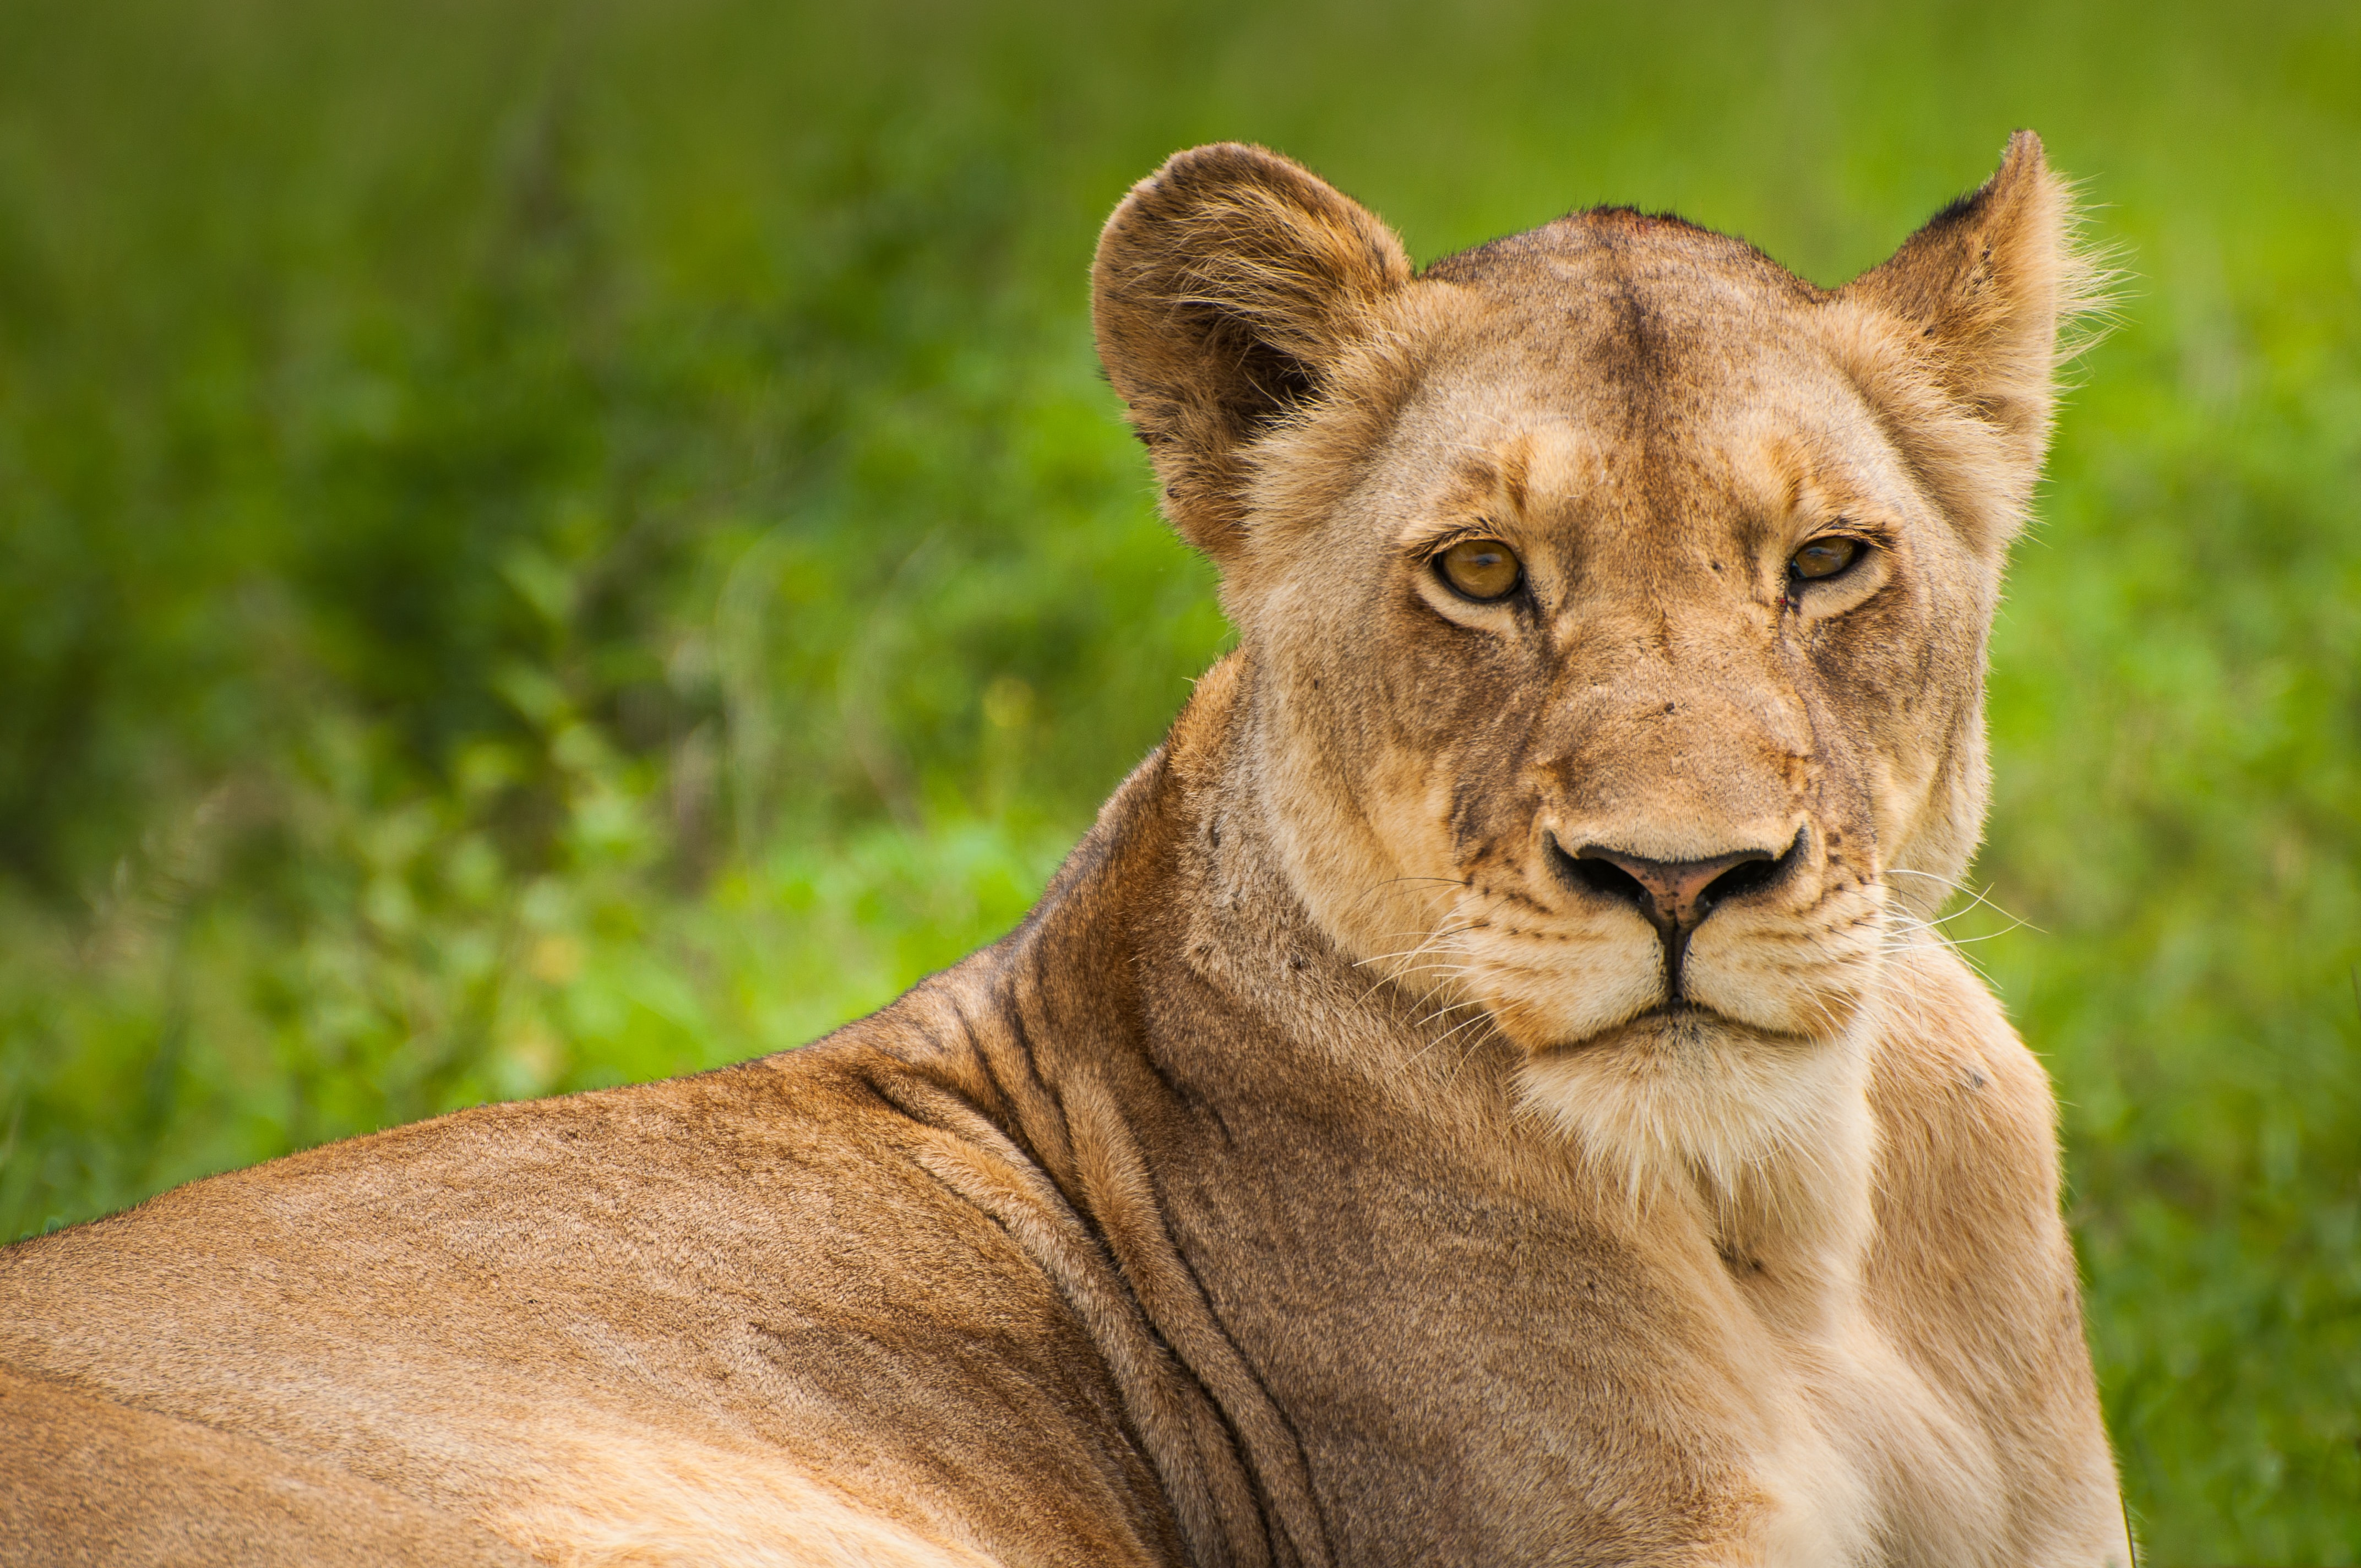 Relaxed sitting lioness staring at camera with green grass in background, Kruger National Park